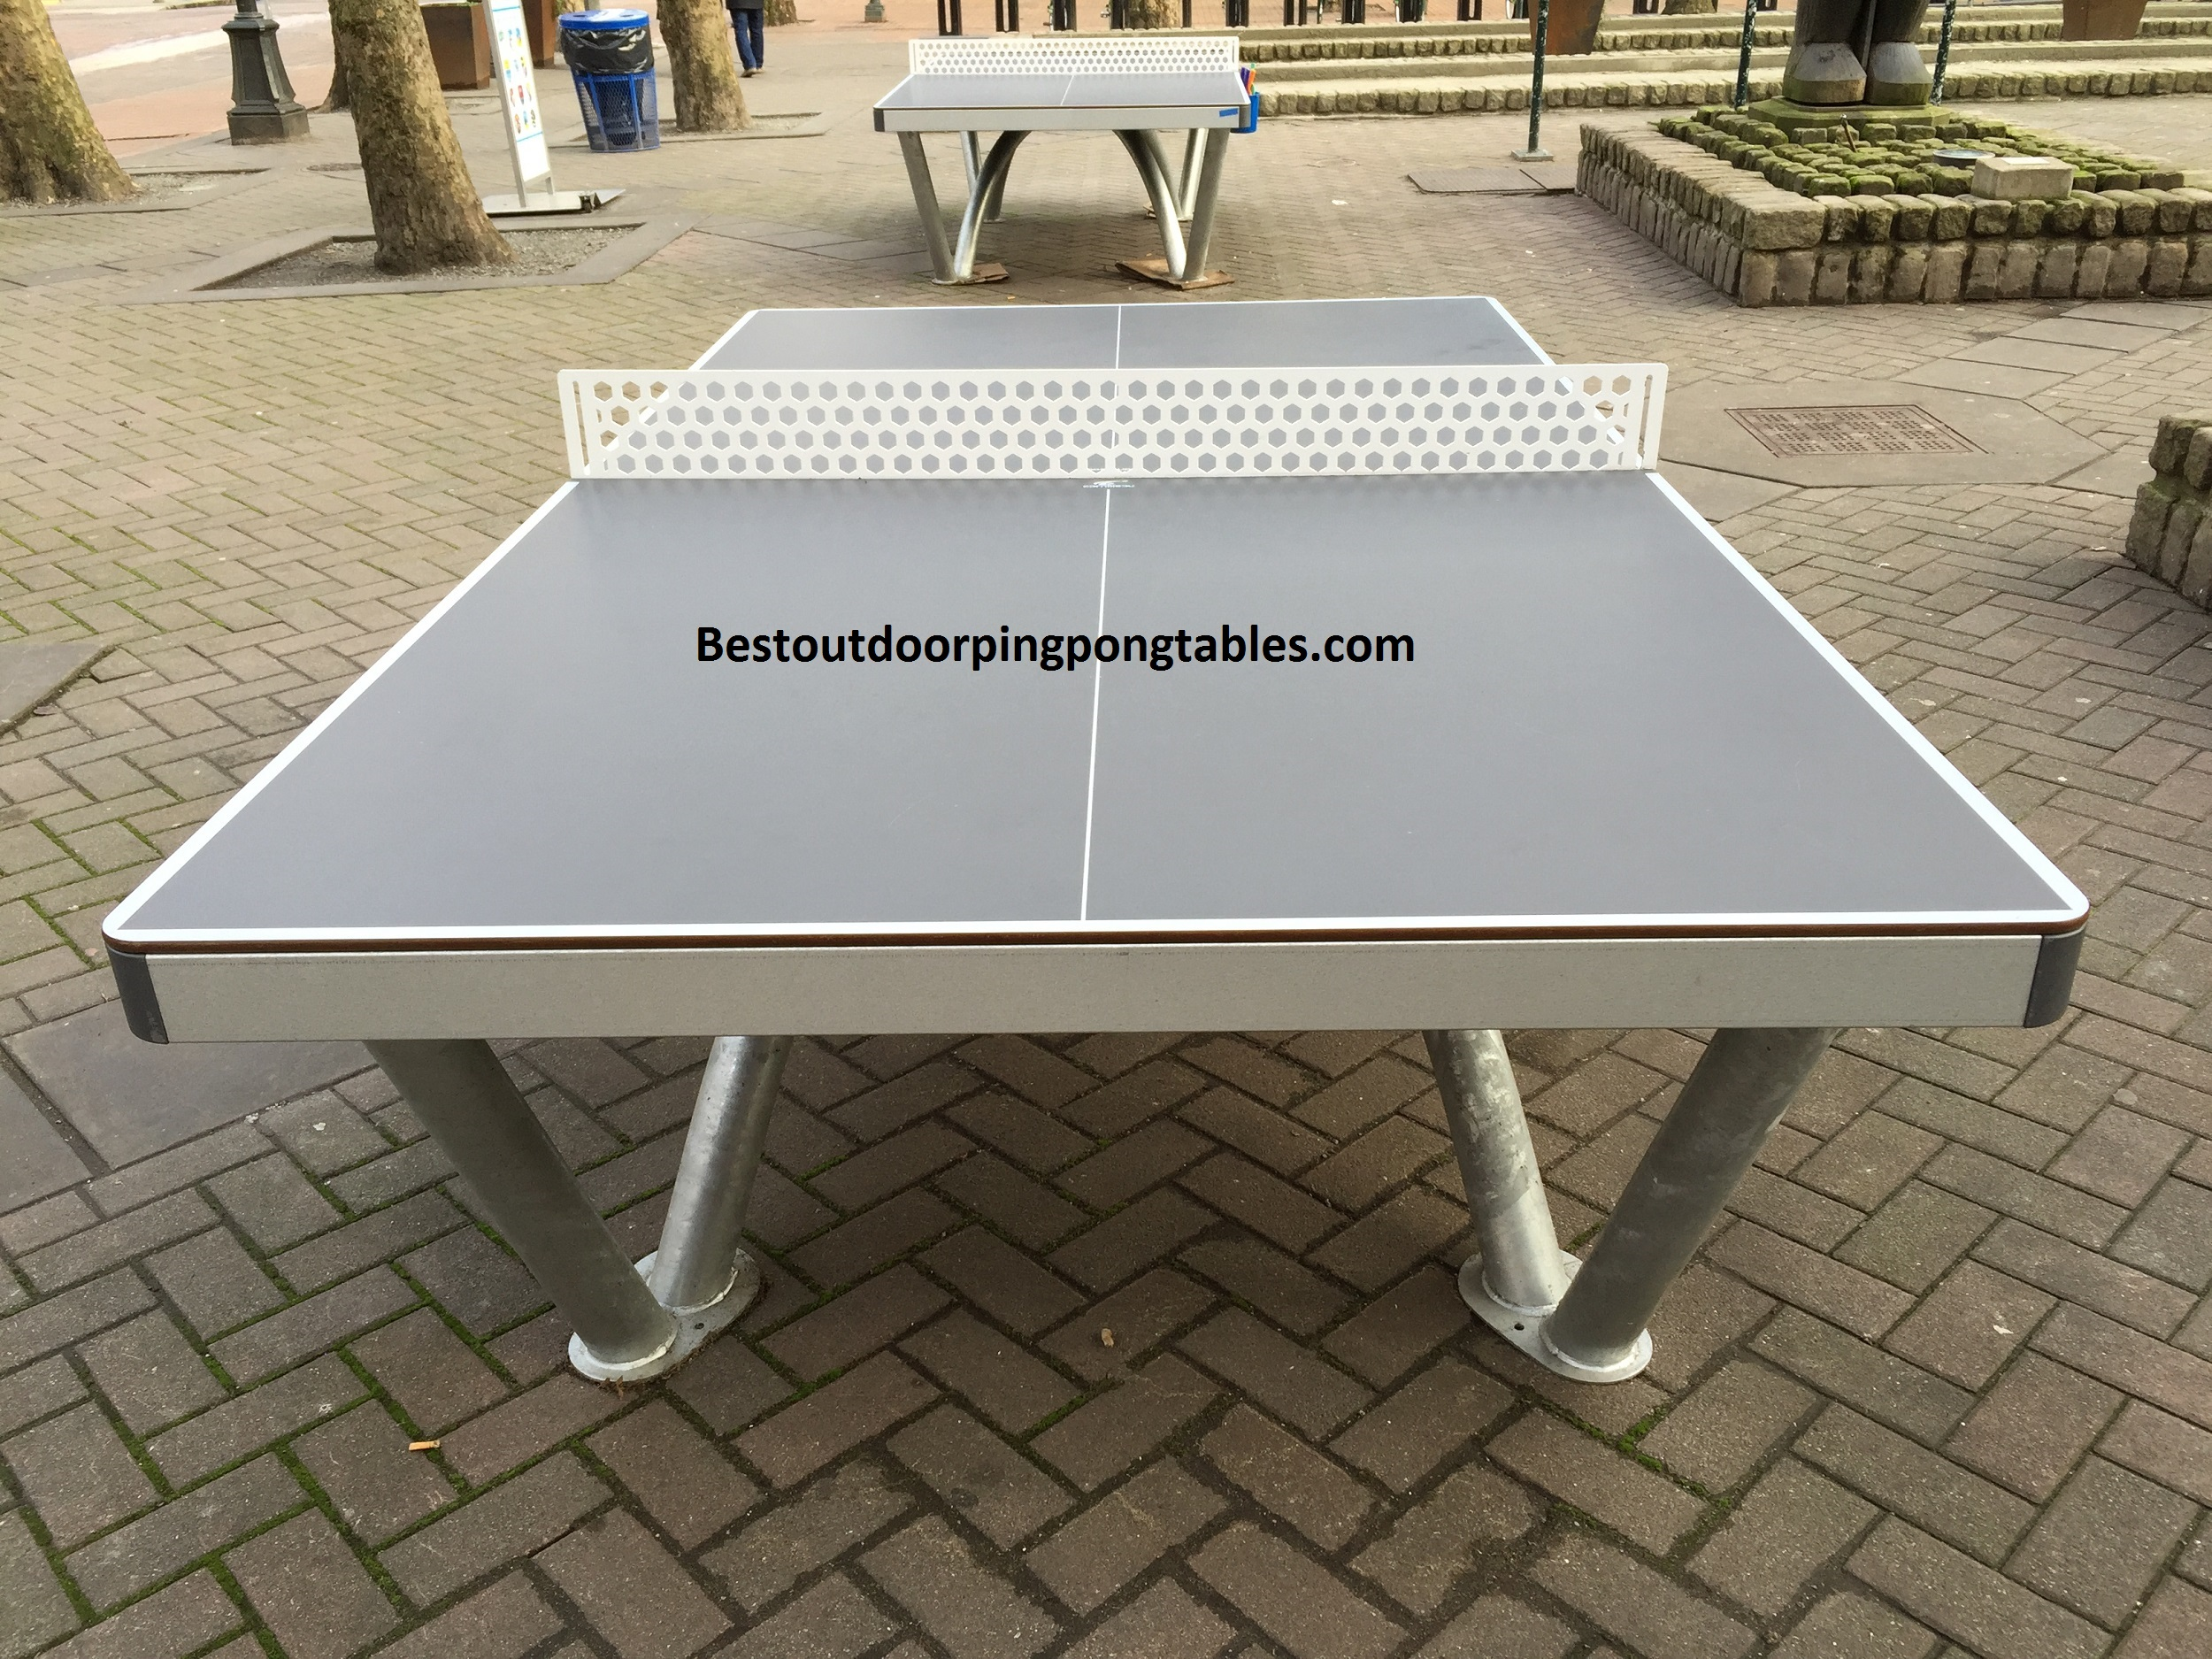 cornilleau park outdoor best outdoor ping pong tables. Black Bedroom Furniture Sets. Home Design Ideas